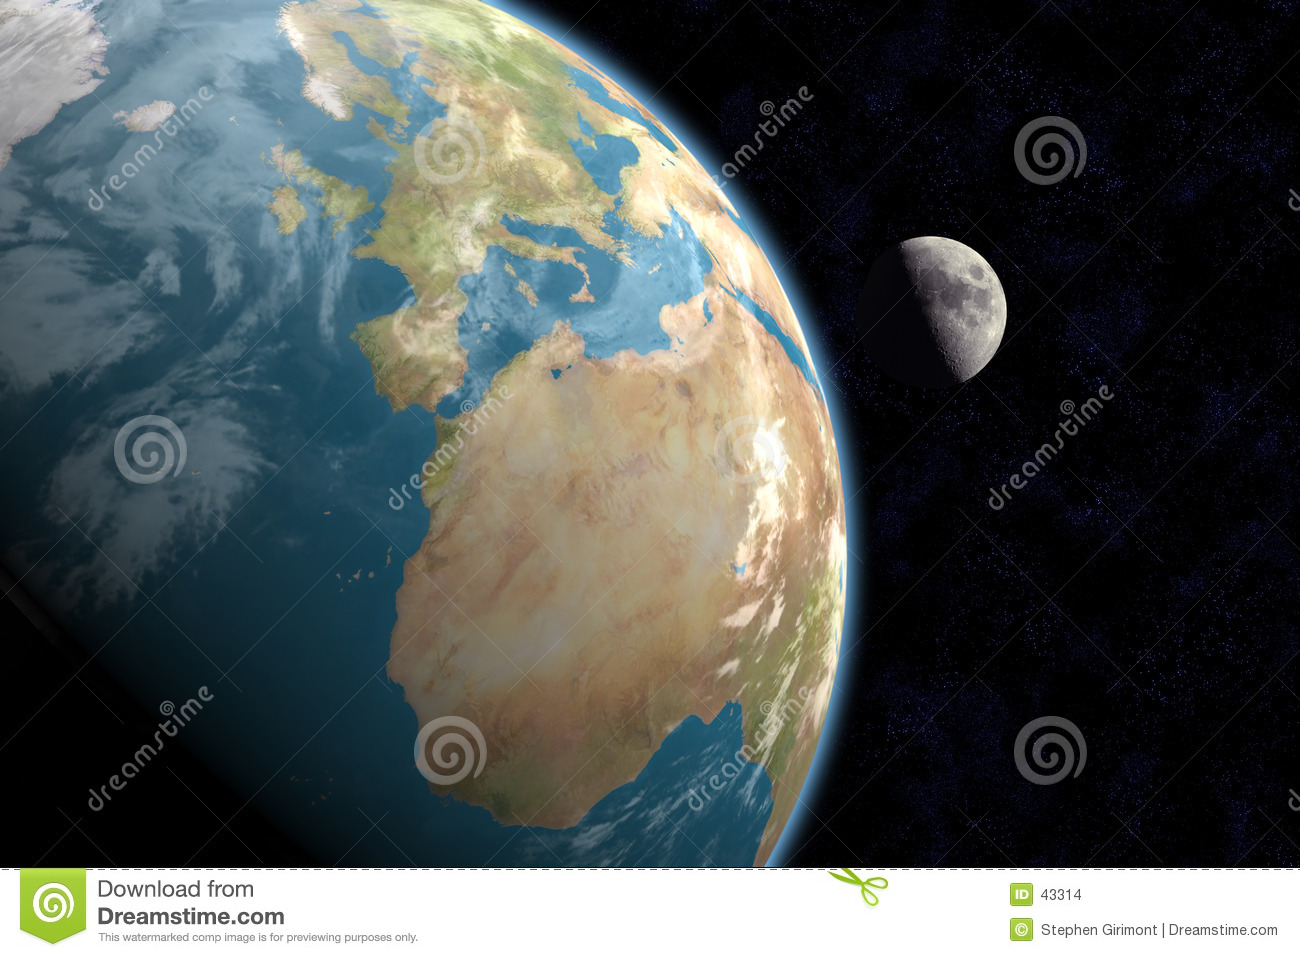 Europe, Africa and Moon with Stars